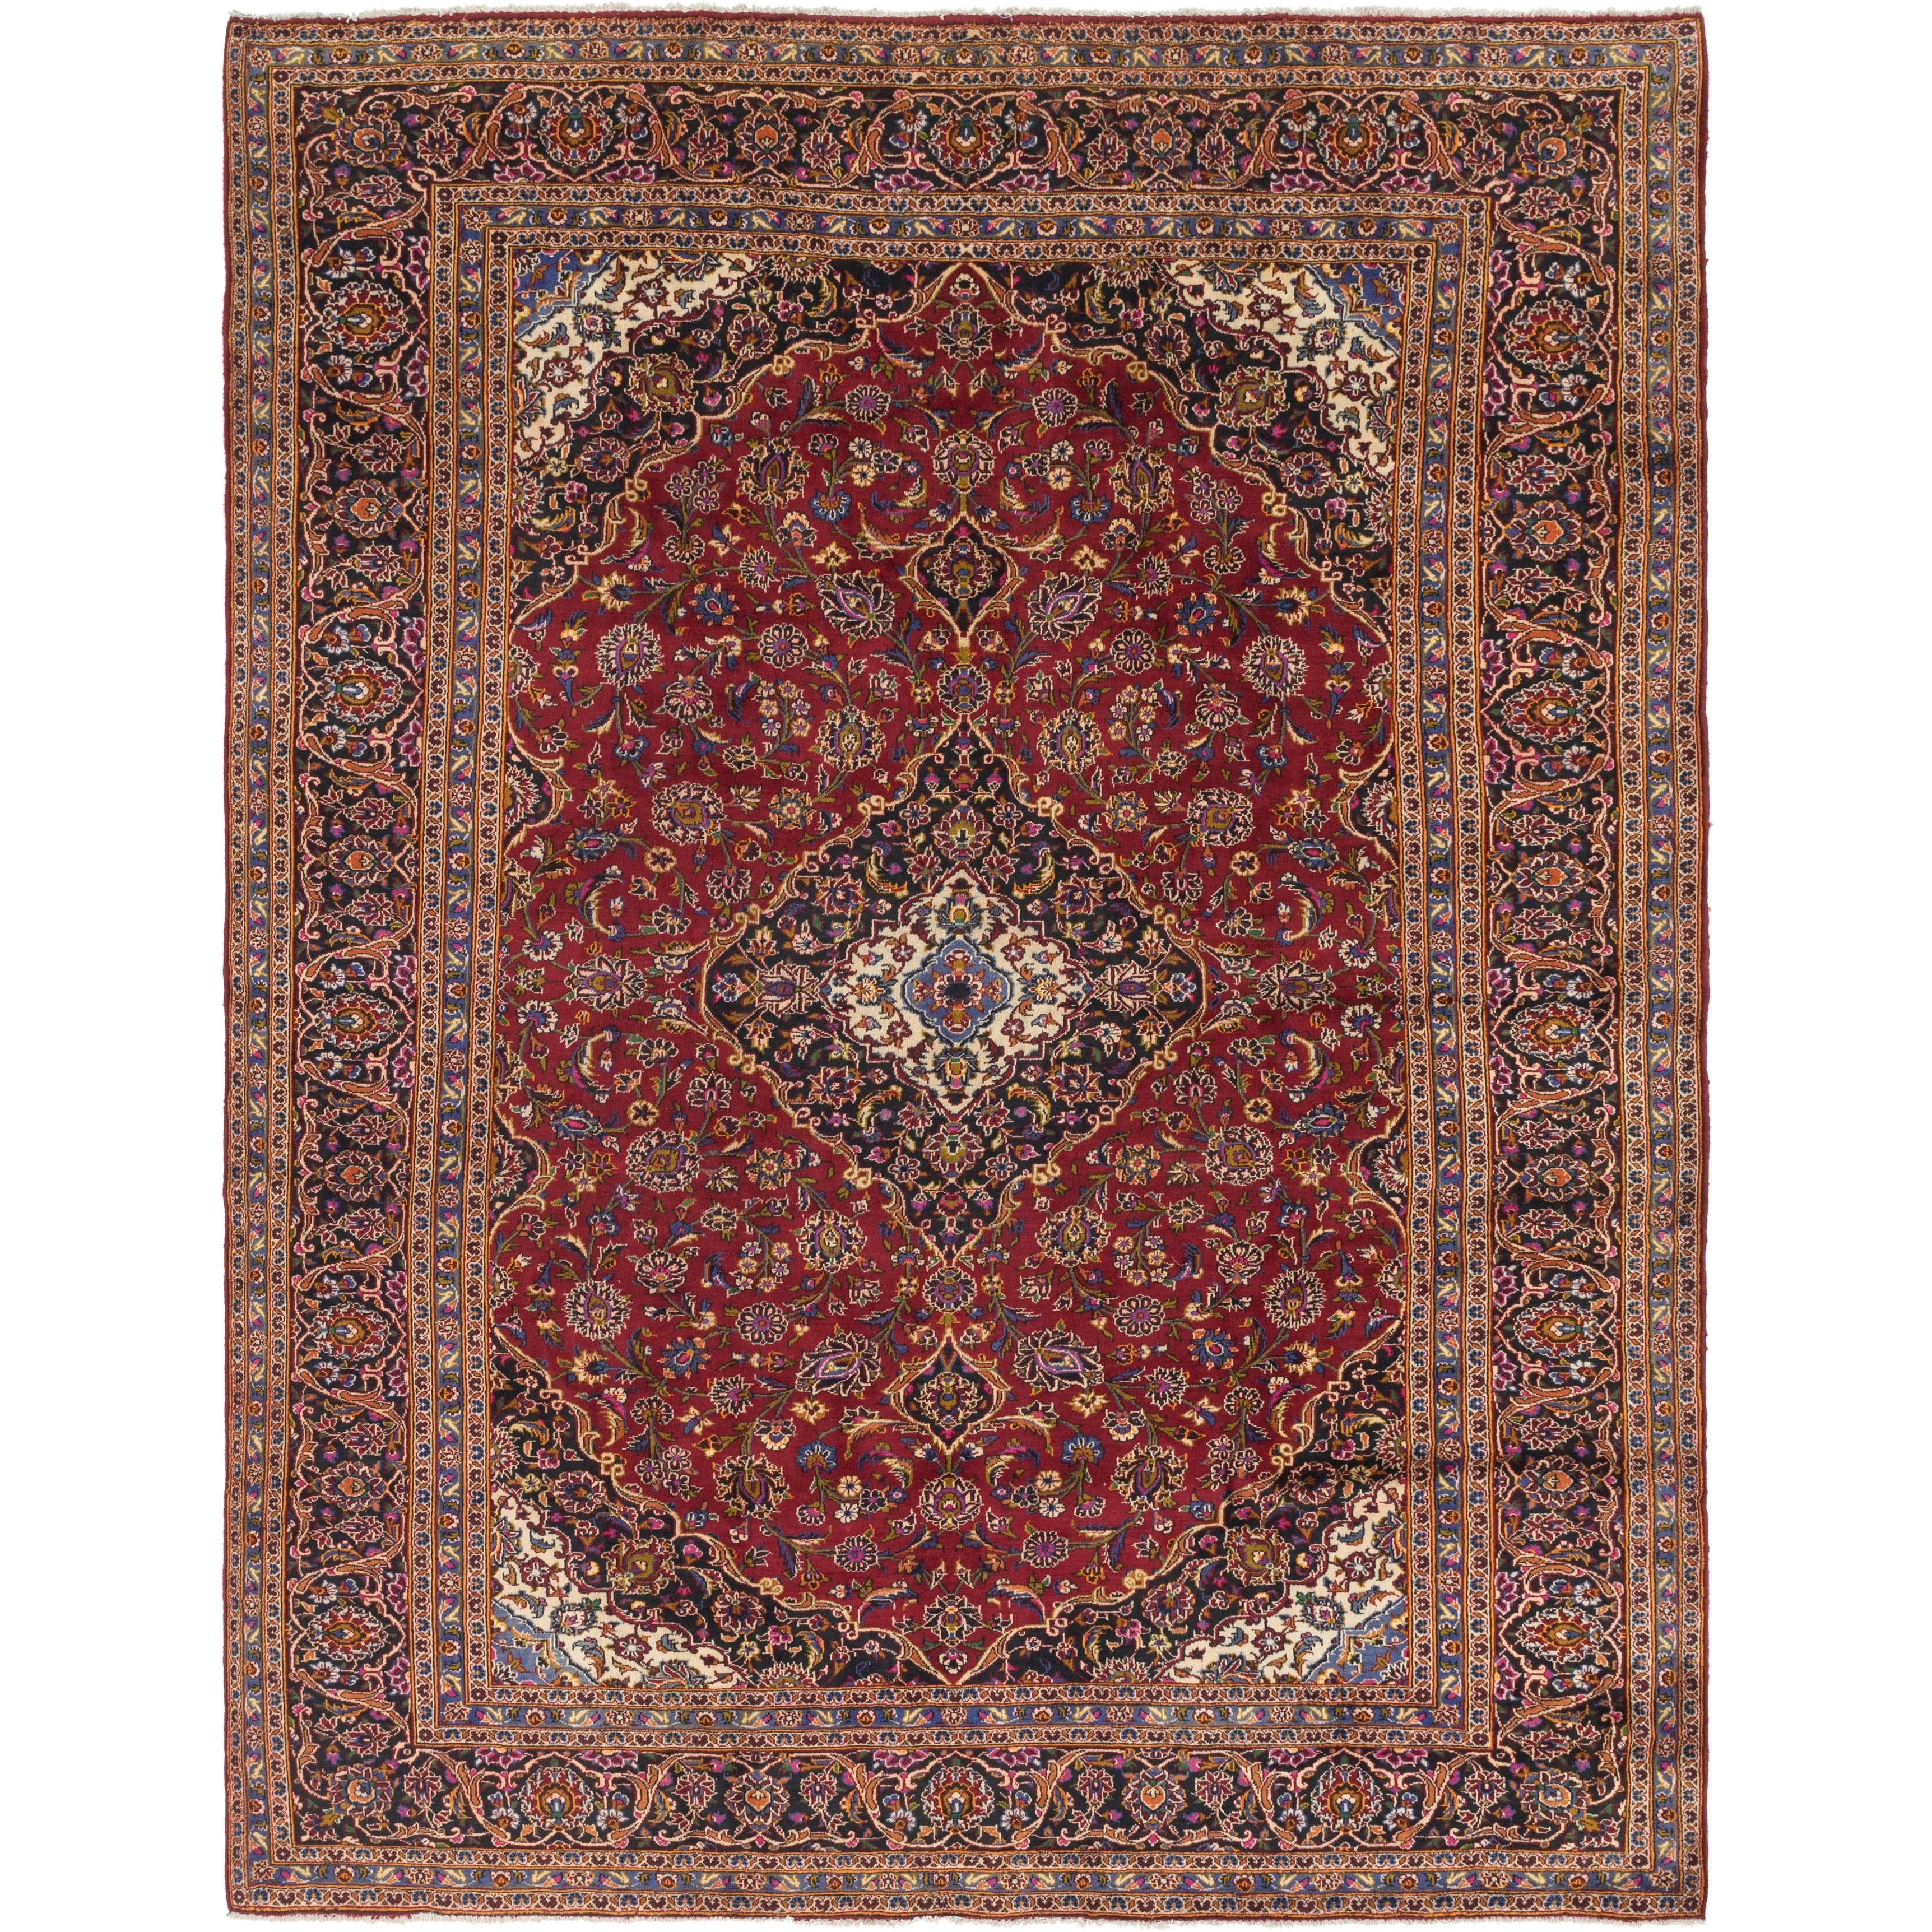 Hand Knotted Kashan Wool Area Rug - 9 9 x 13 (Red - 9 9 x 13)